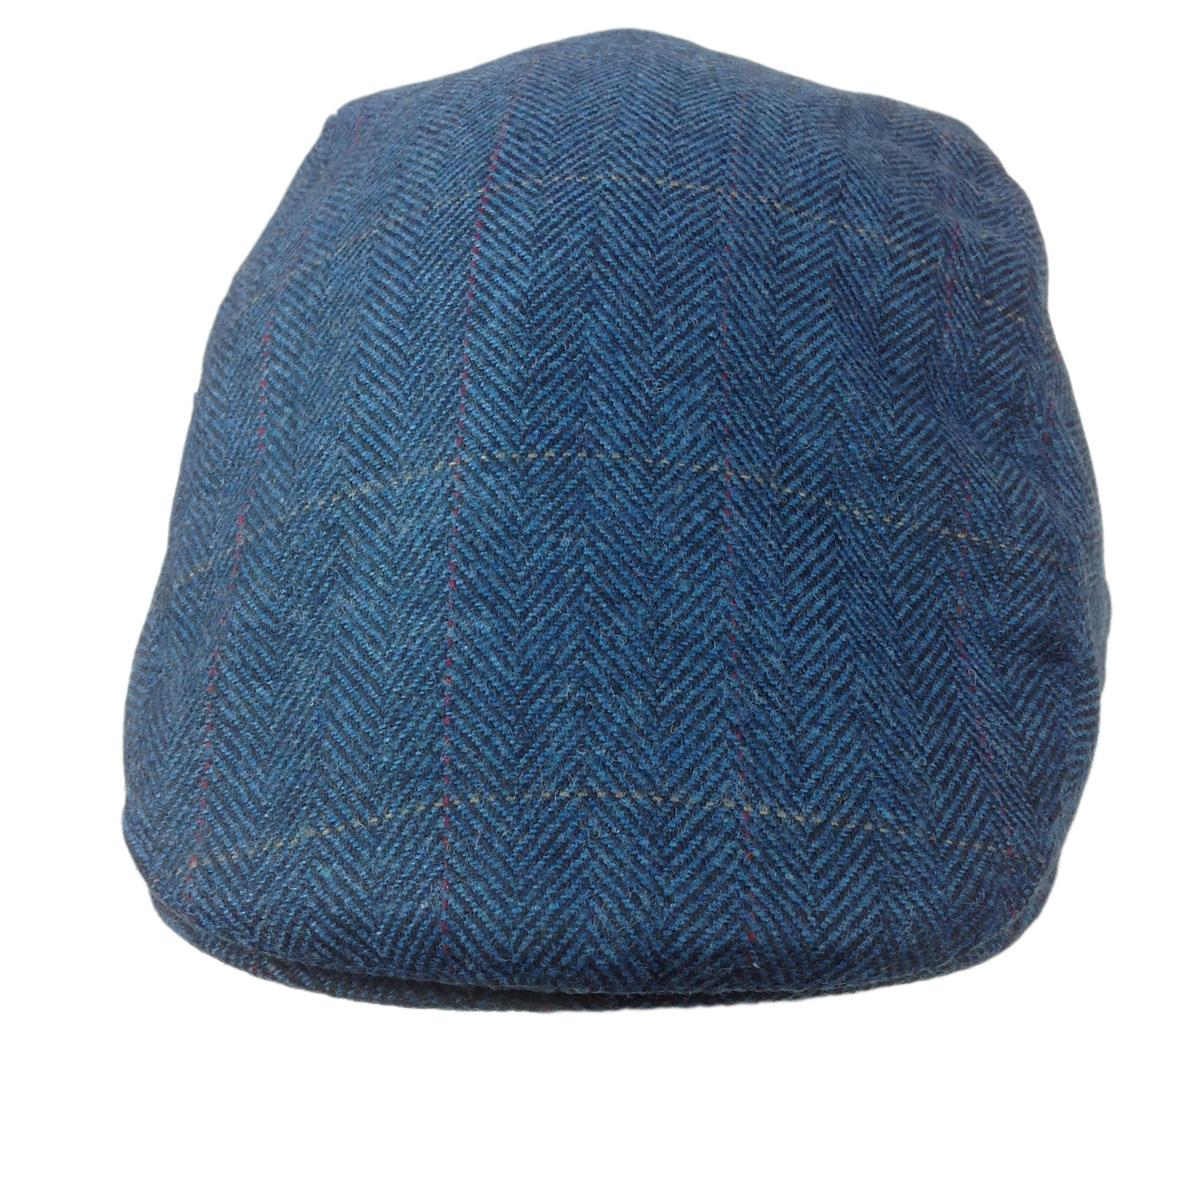 b1bb624520a Click to enlarge. HomeCountrywear Selby TWEED WOOL Flat Cap with Quilted  Inner Lining Sizes M L XL Waterproof and Breathable